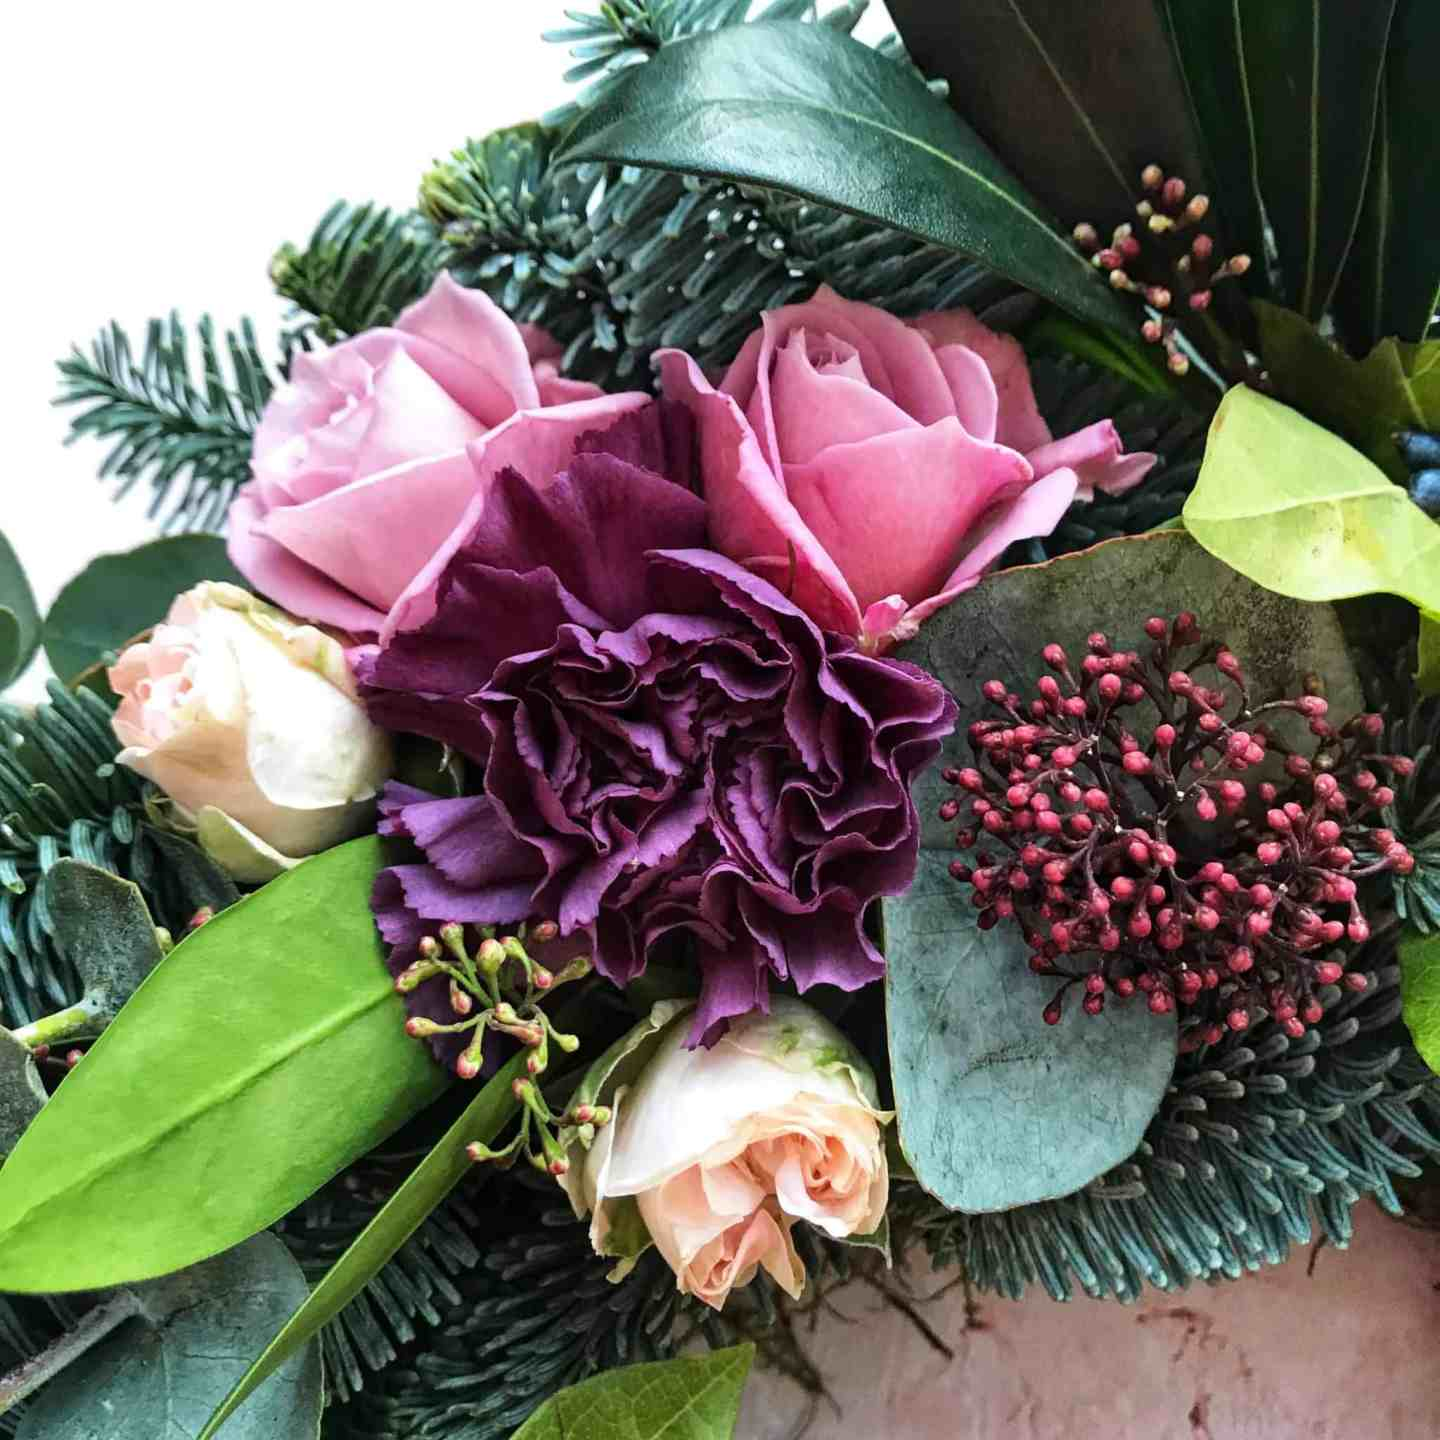 Flowers and berries on my contemporary Christmas wreath